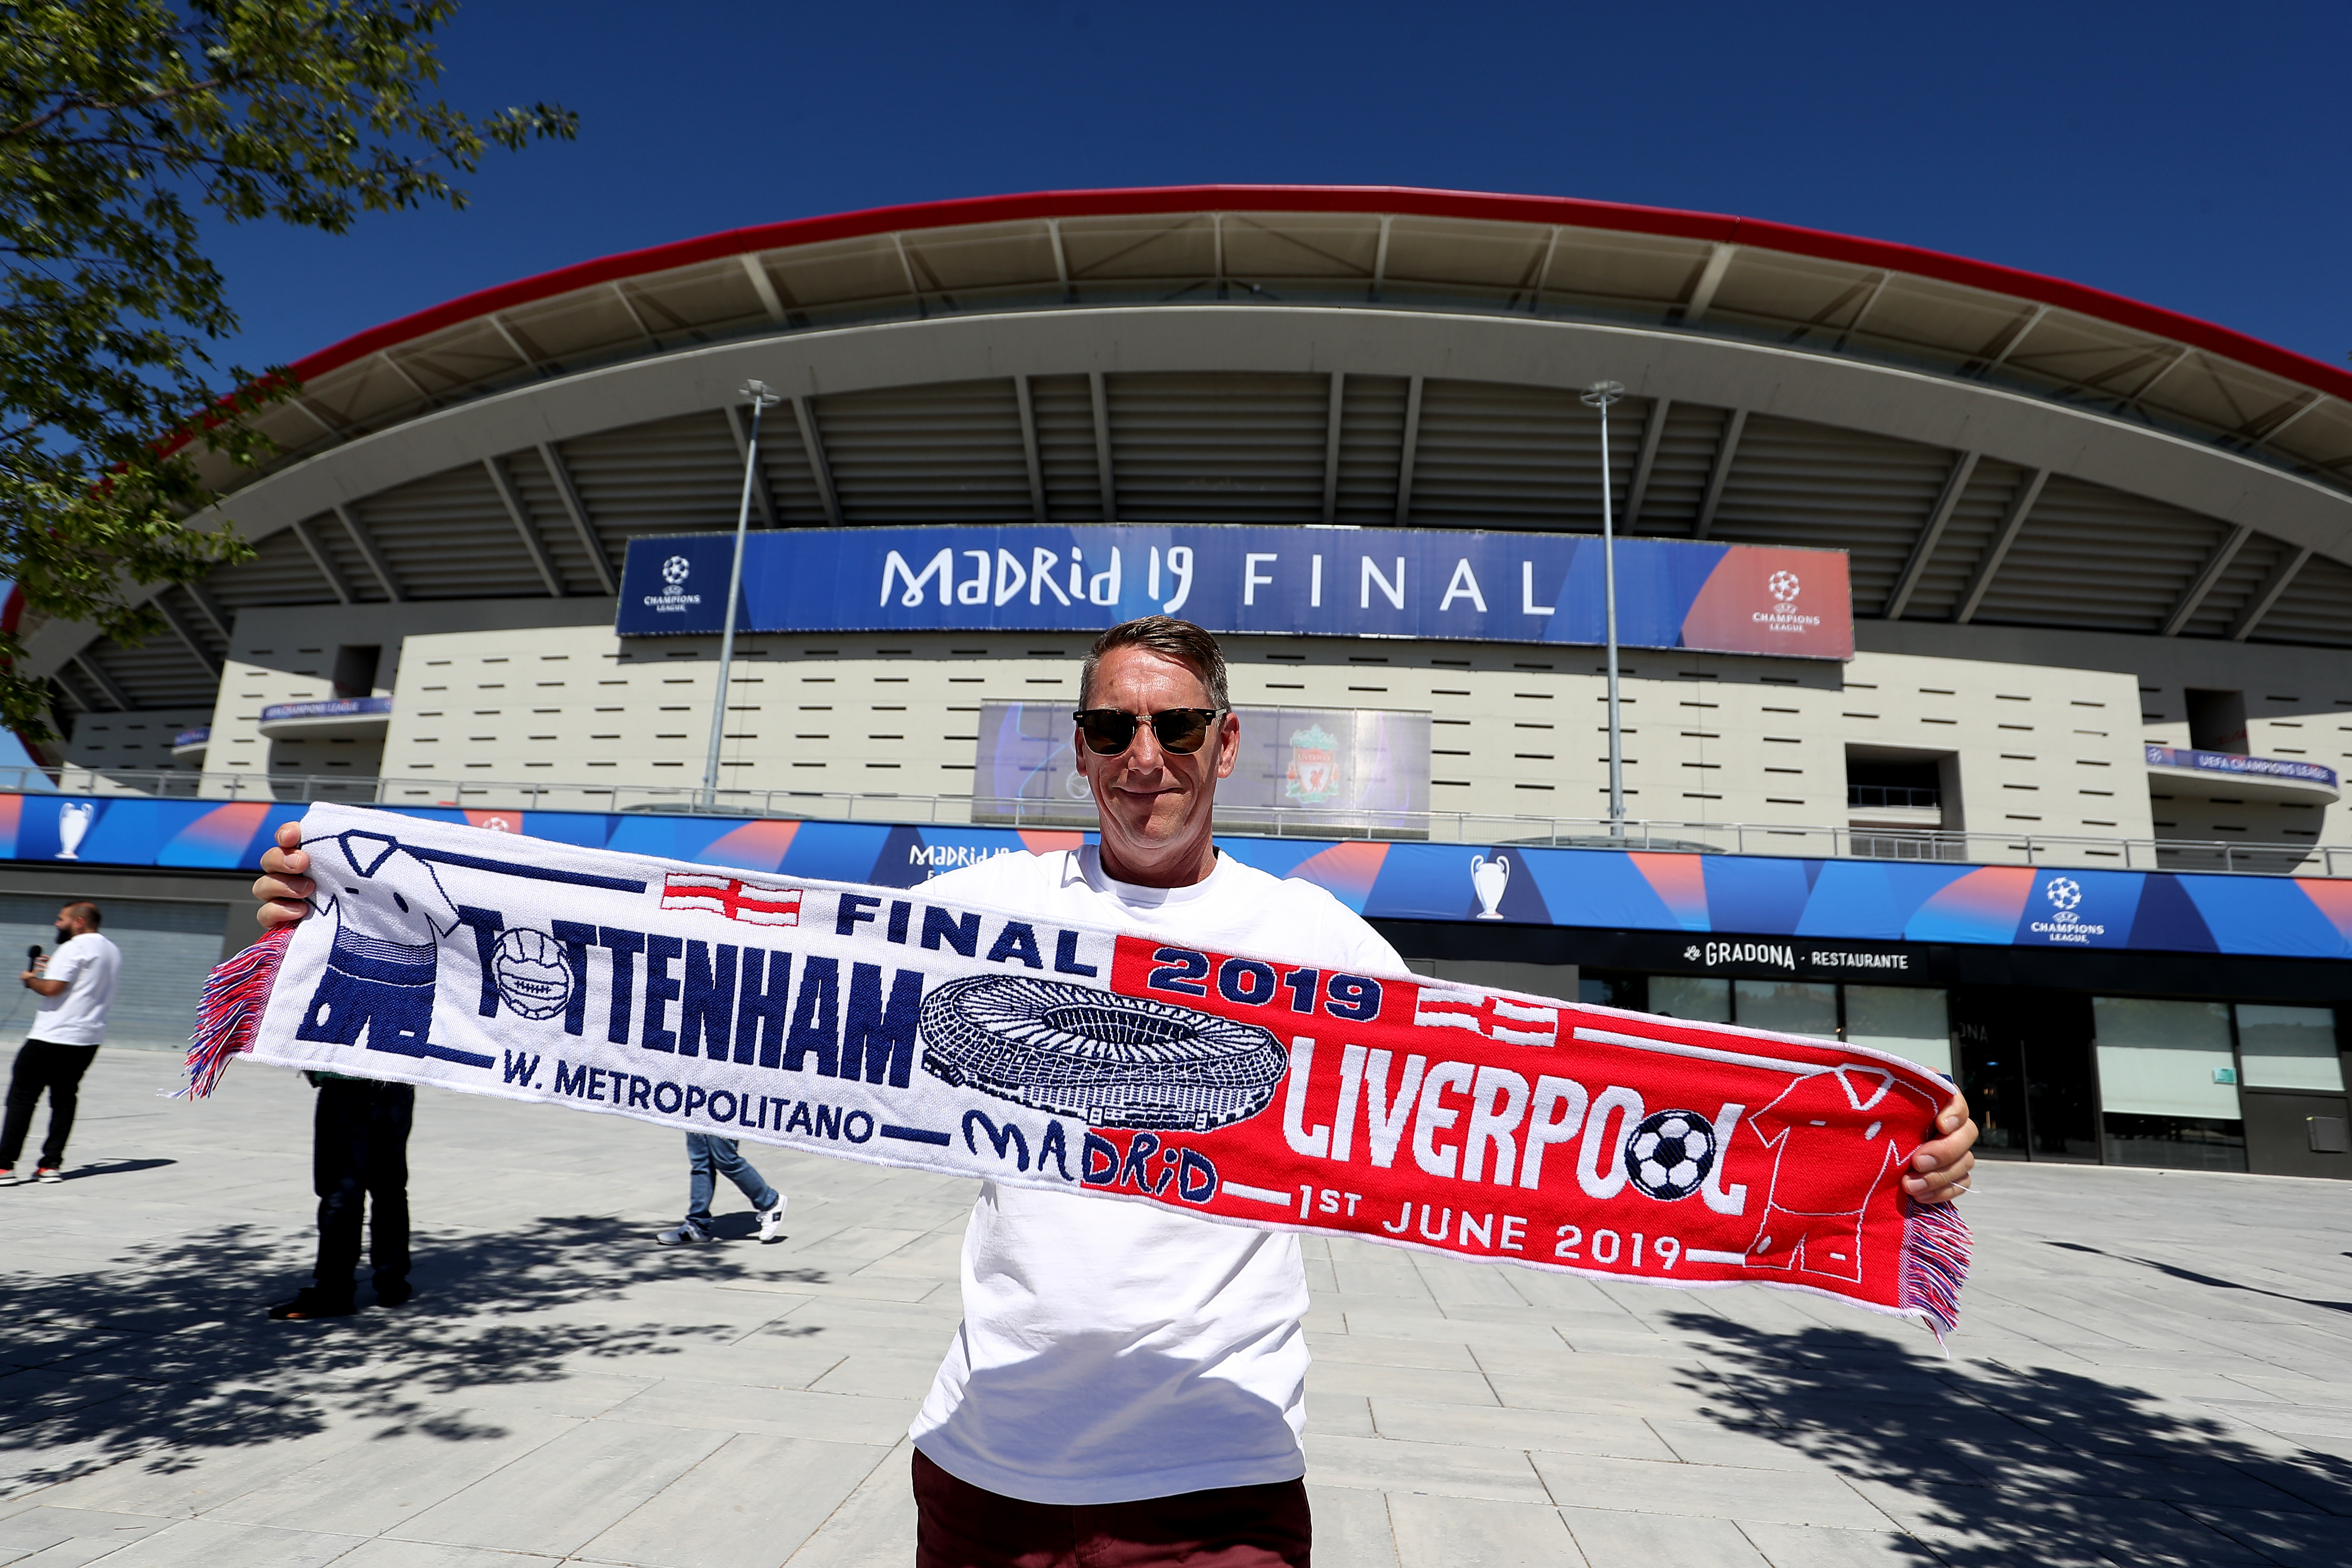 A Tottenham fan with a half-and-half scarf in front of the Wanda Metropolitano